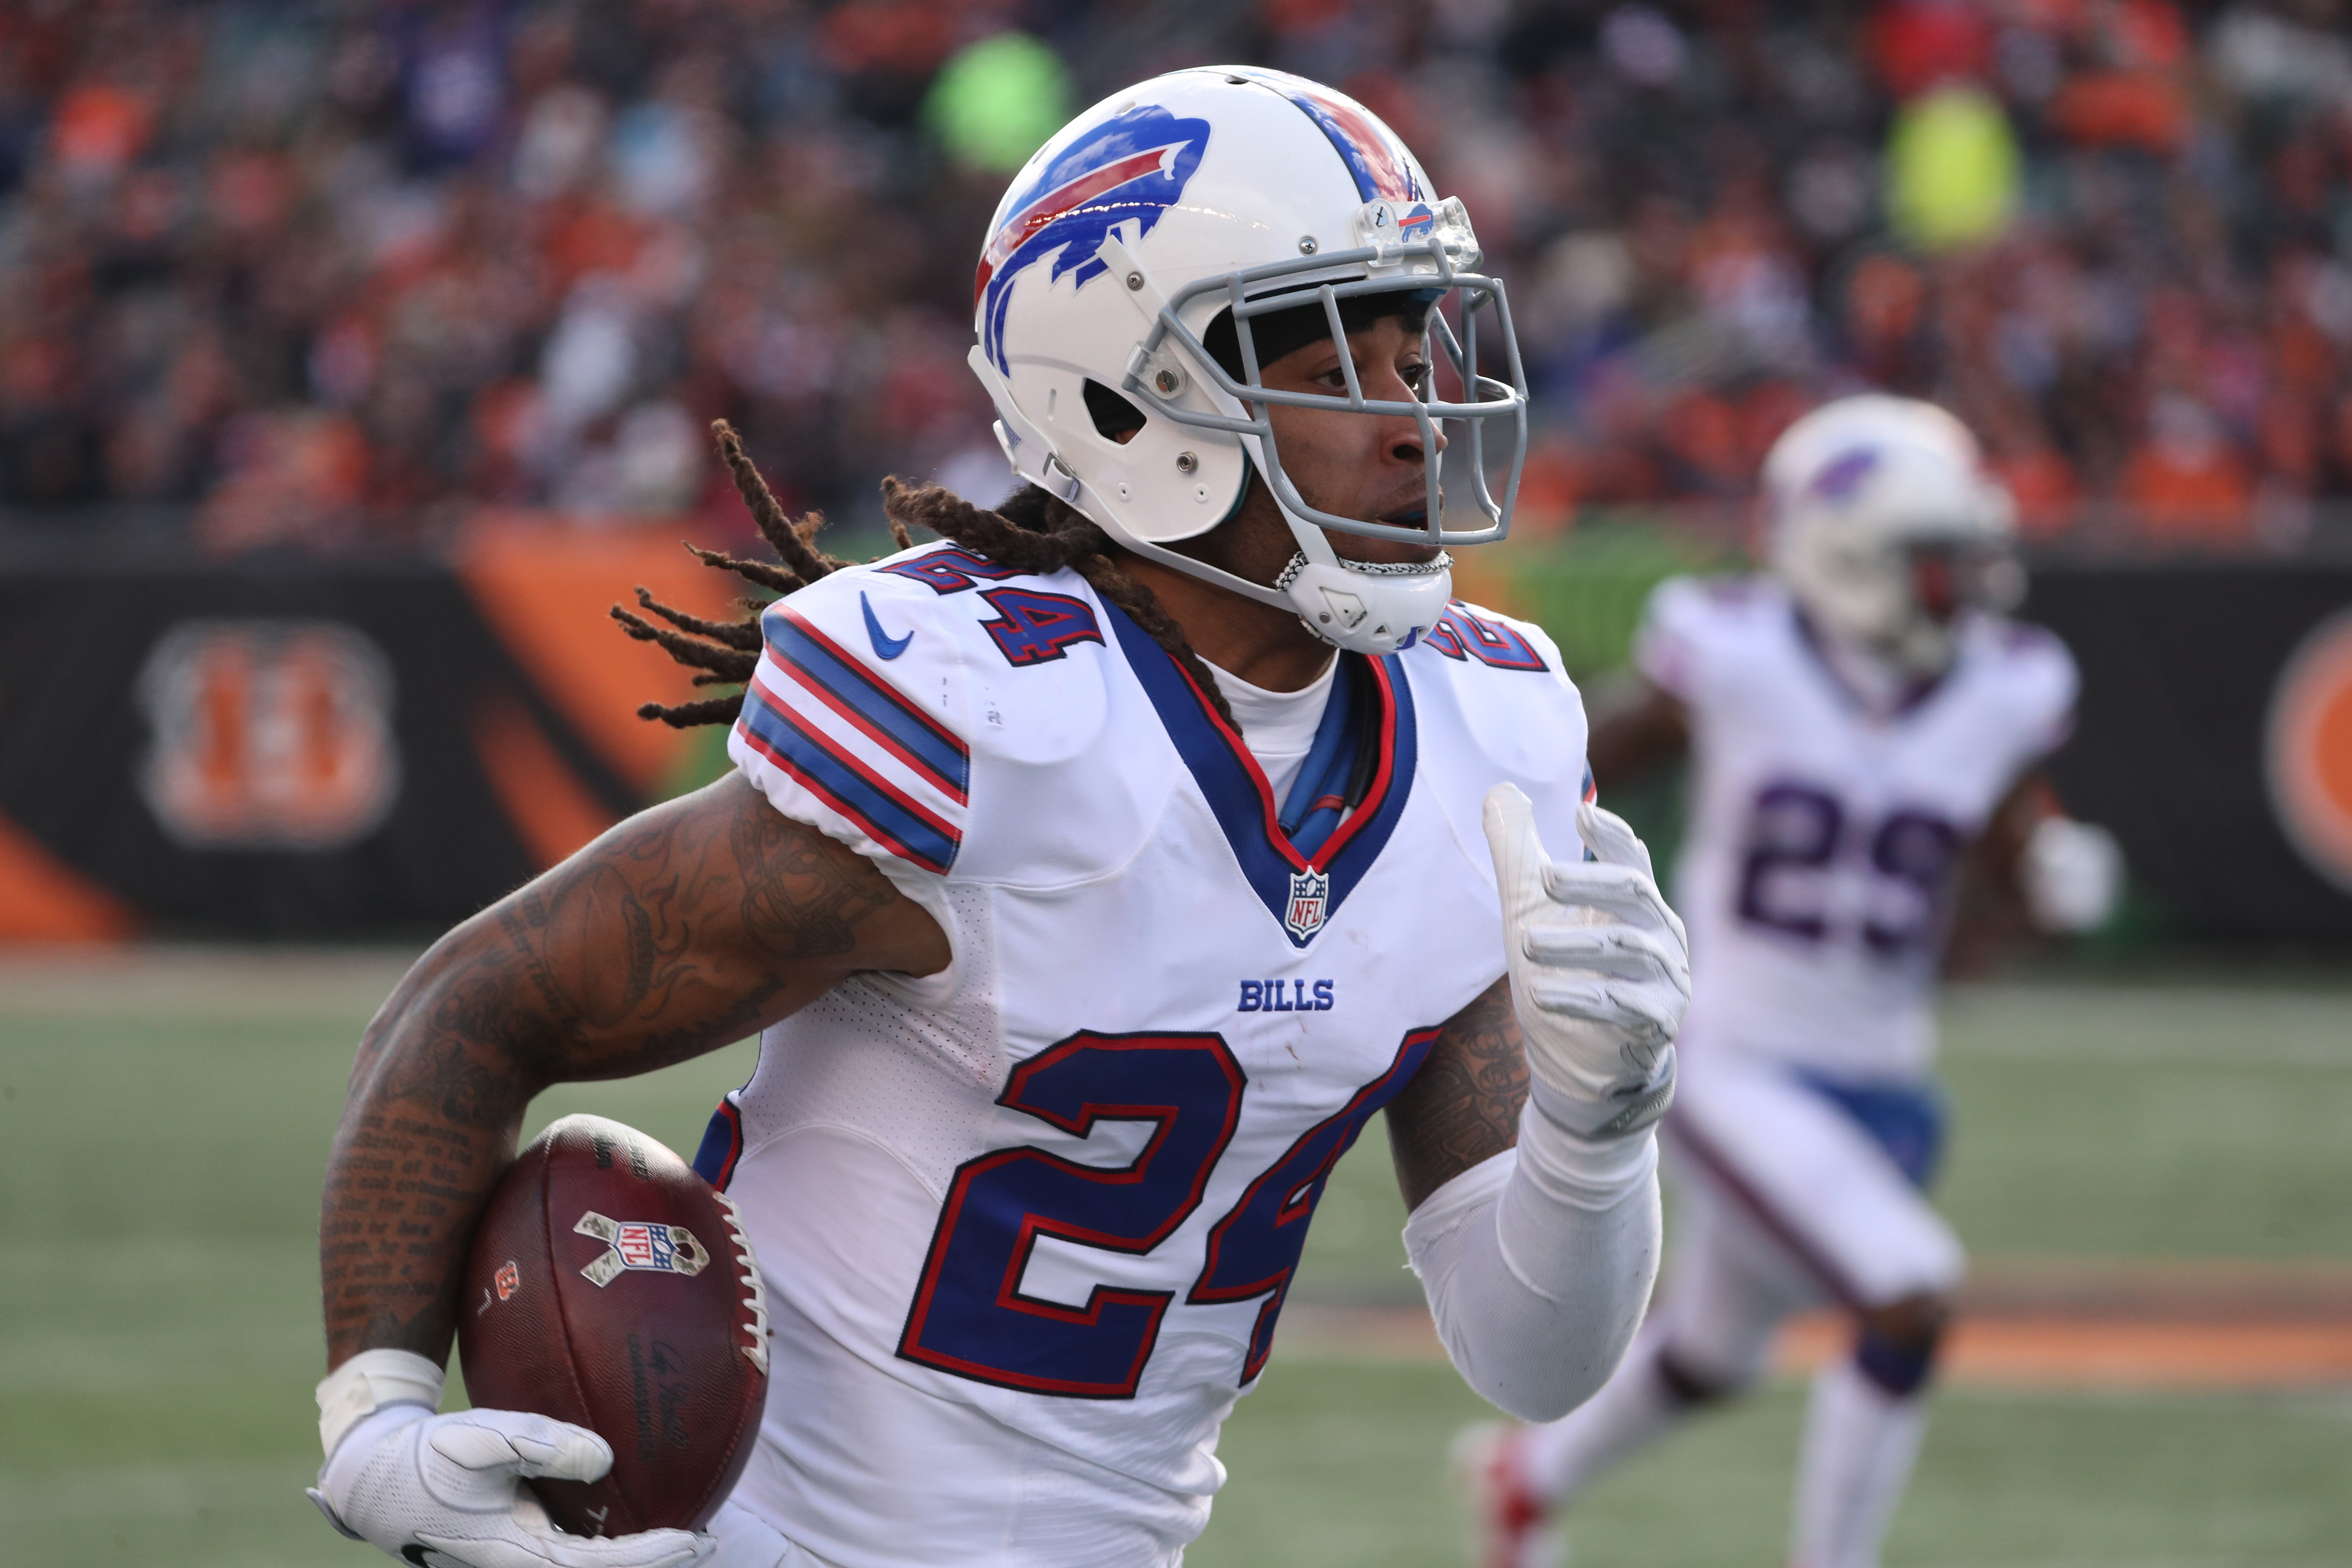 Buffalo Bills cornerback Stephon Gilmore (24) intercepts the ball and returns it for 49 yards during the second quarter. (James P. McCoy/Buffalo News)